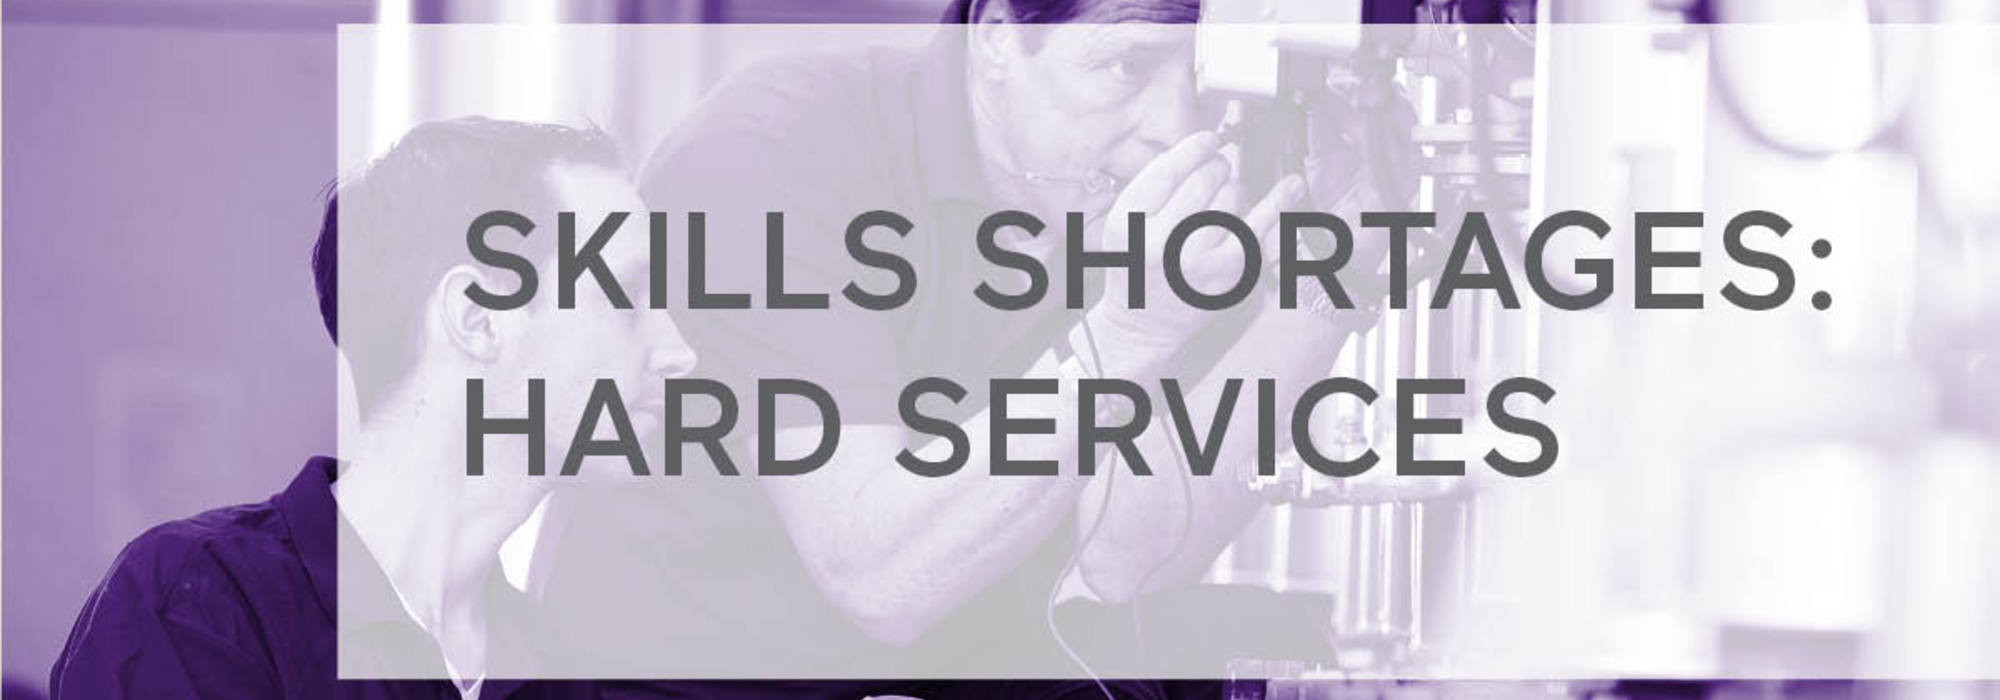 Thorn Baker EFM Hard Services Skills Shortage Survey Results